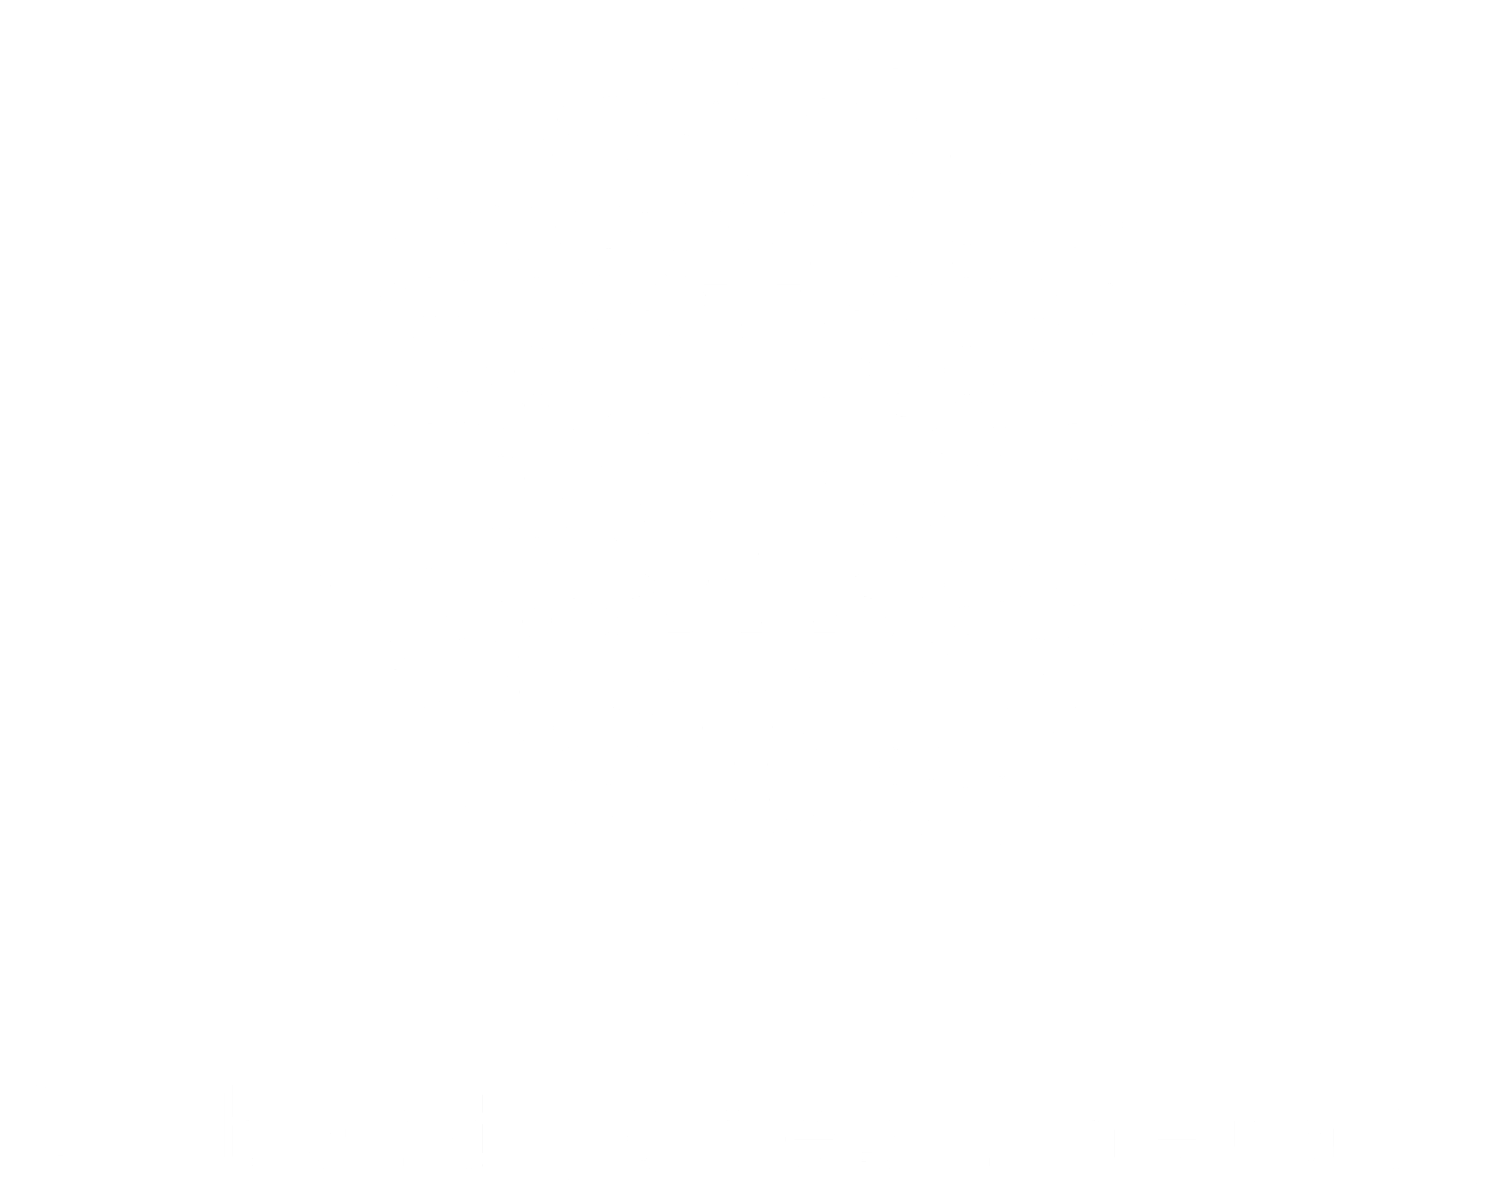 Richard Jones Therapy